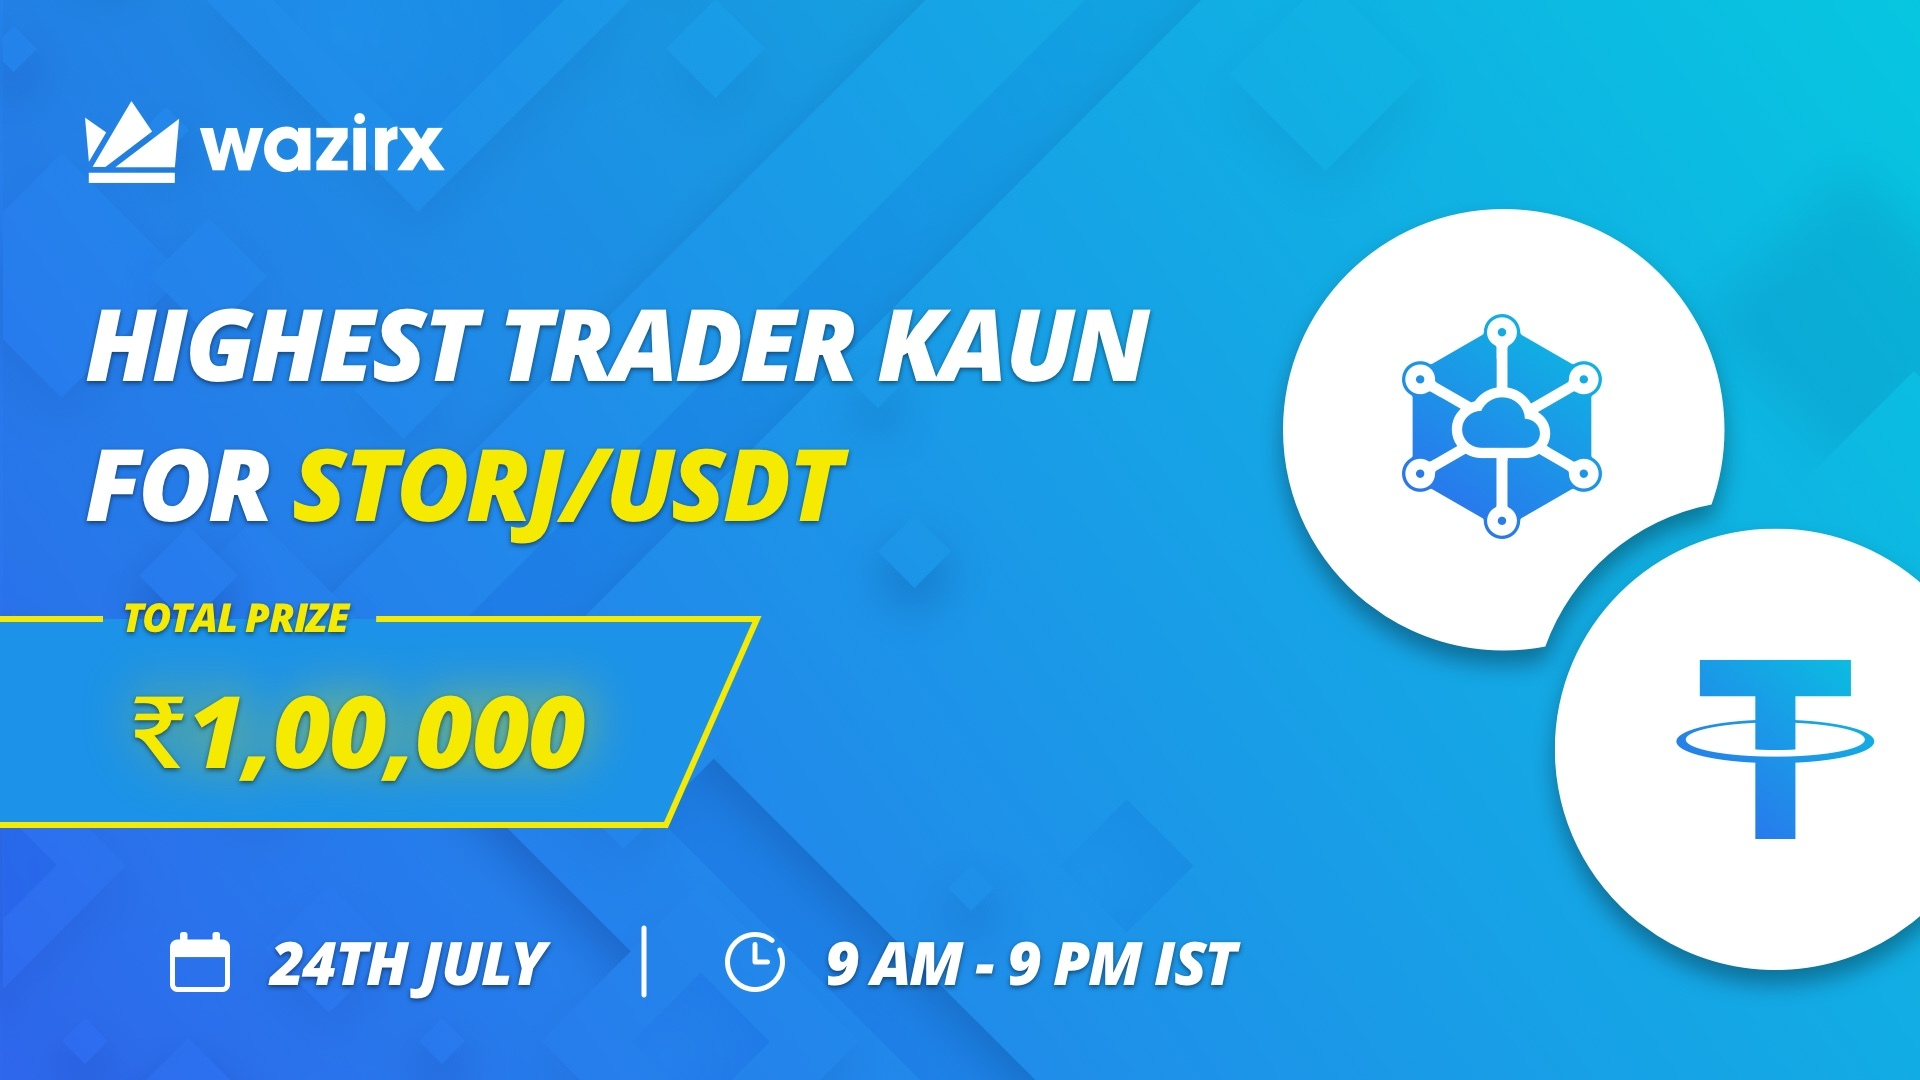 Highest Trader Kaun for STORJ/USDT